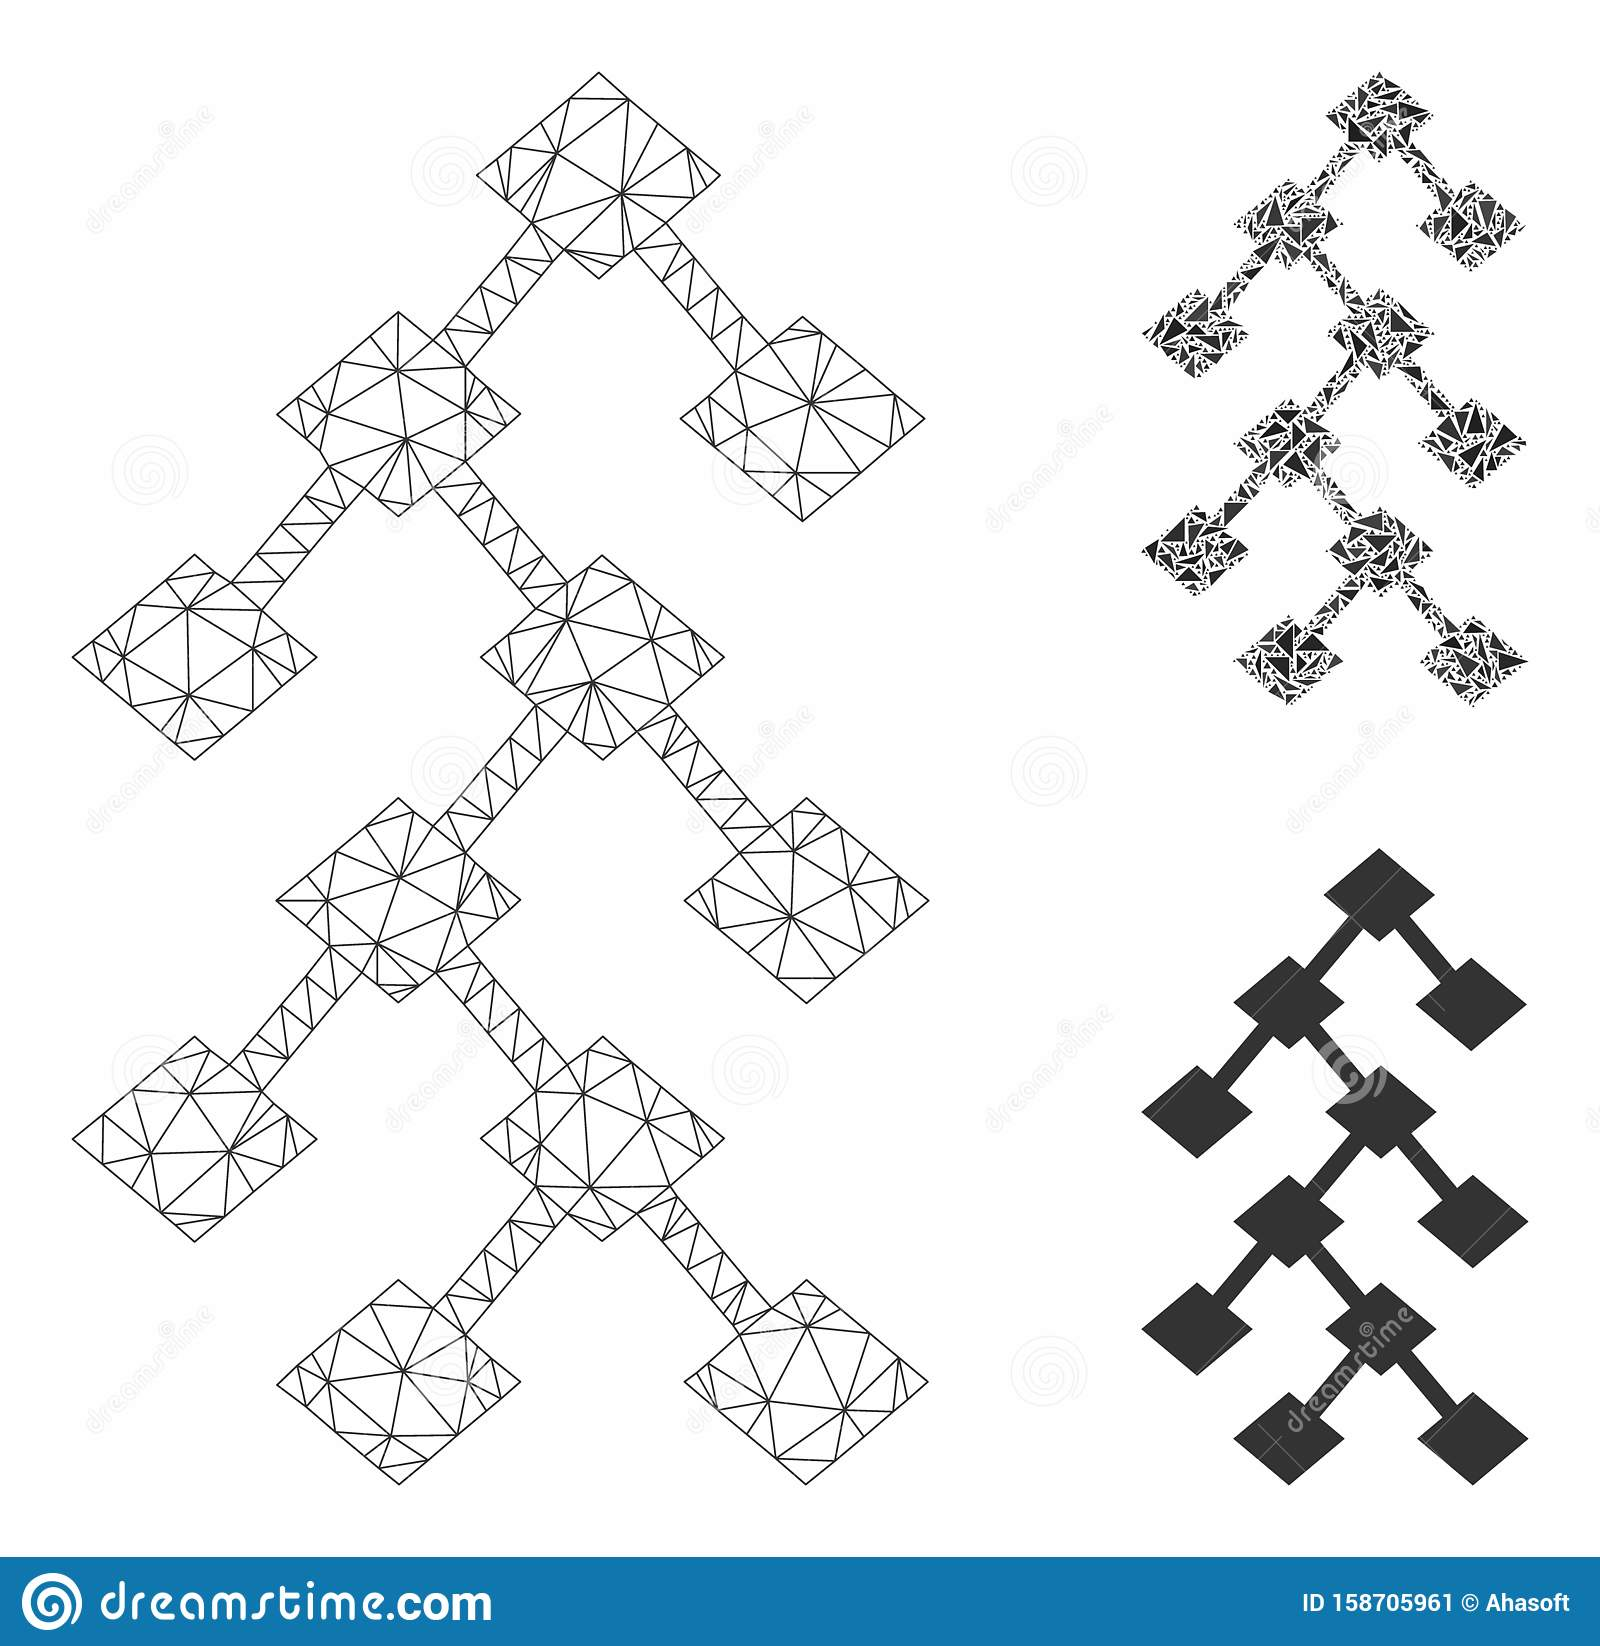 Binary Tree Vector Mesh Network Model and Triangle Mosaic Icon